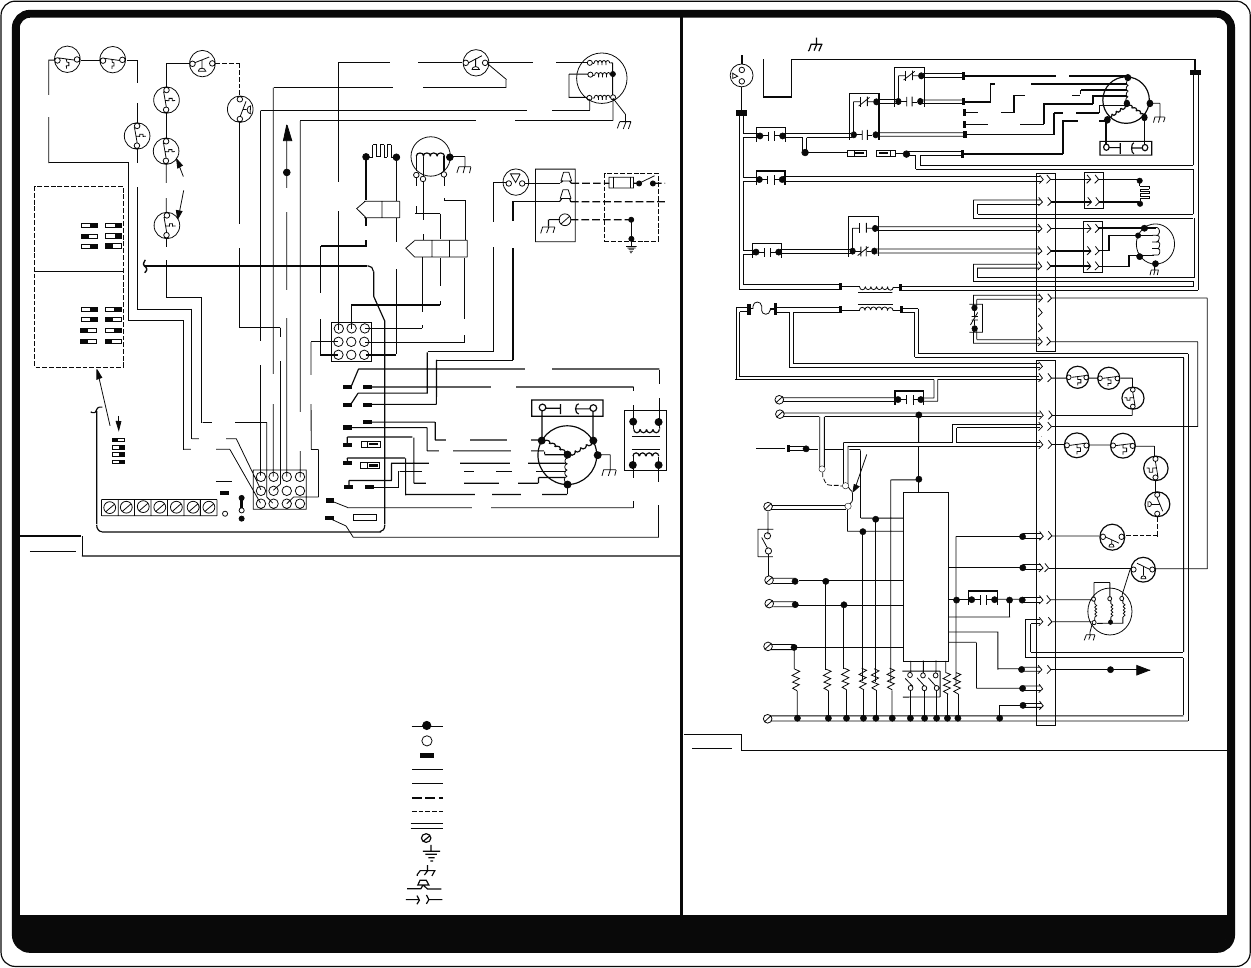 c2b73d22 c45f 43df a574 b6e707ea0cc7 bg8 power flame wiring diagram power flame burners wiring diagrams honeywell pressure switch wiring diagram at soozxer.org